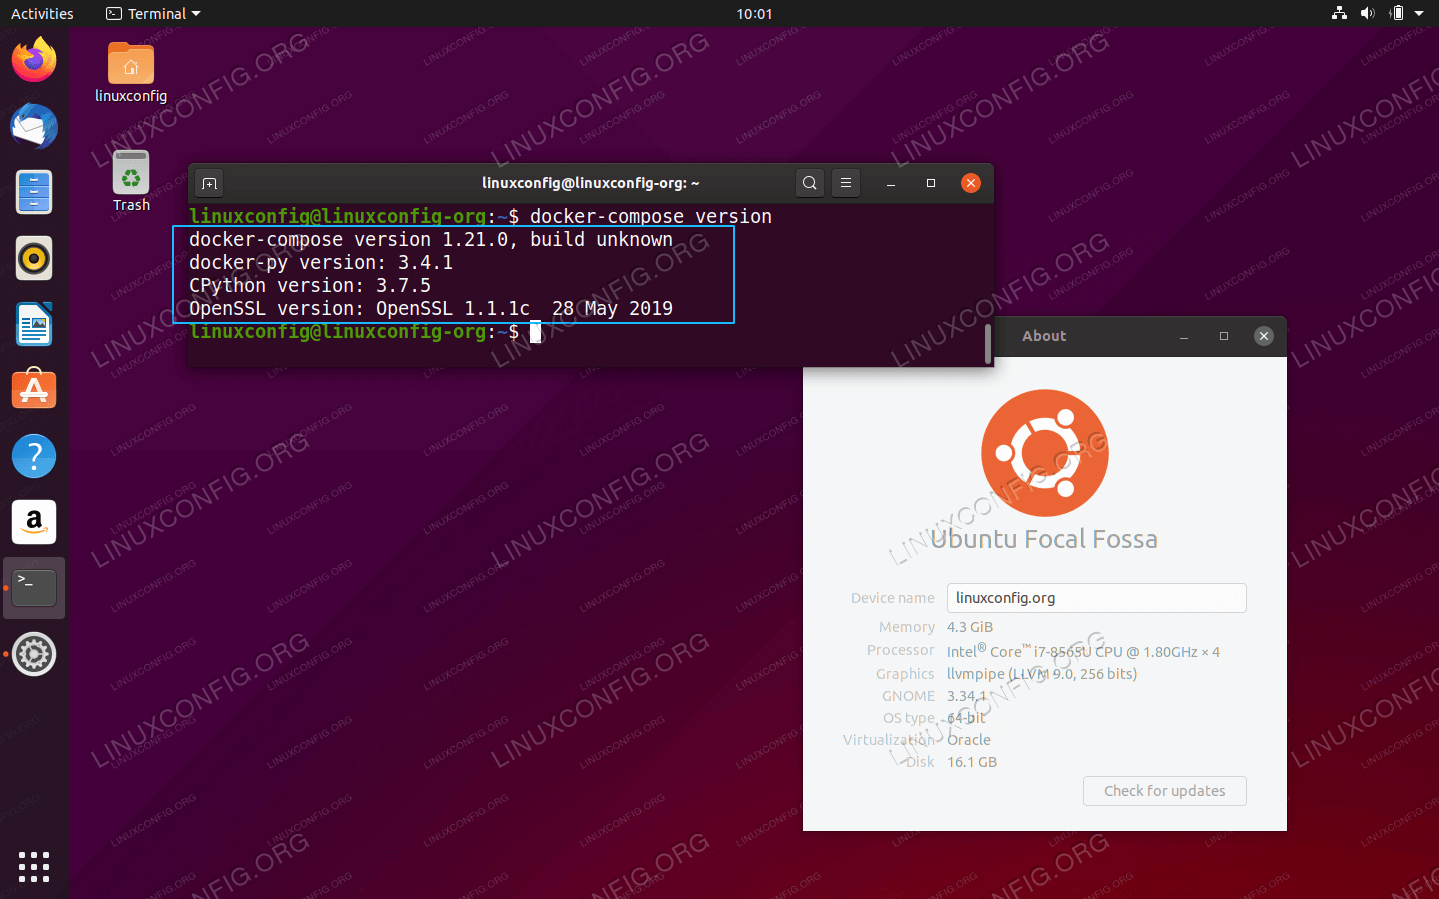 docker-compose on Ubuntu 20.04 Focal Fossa Linux